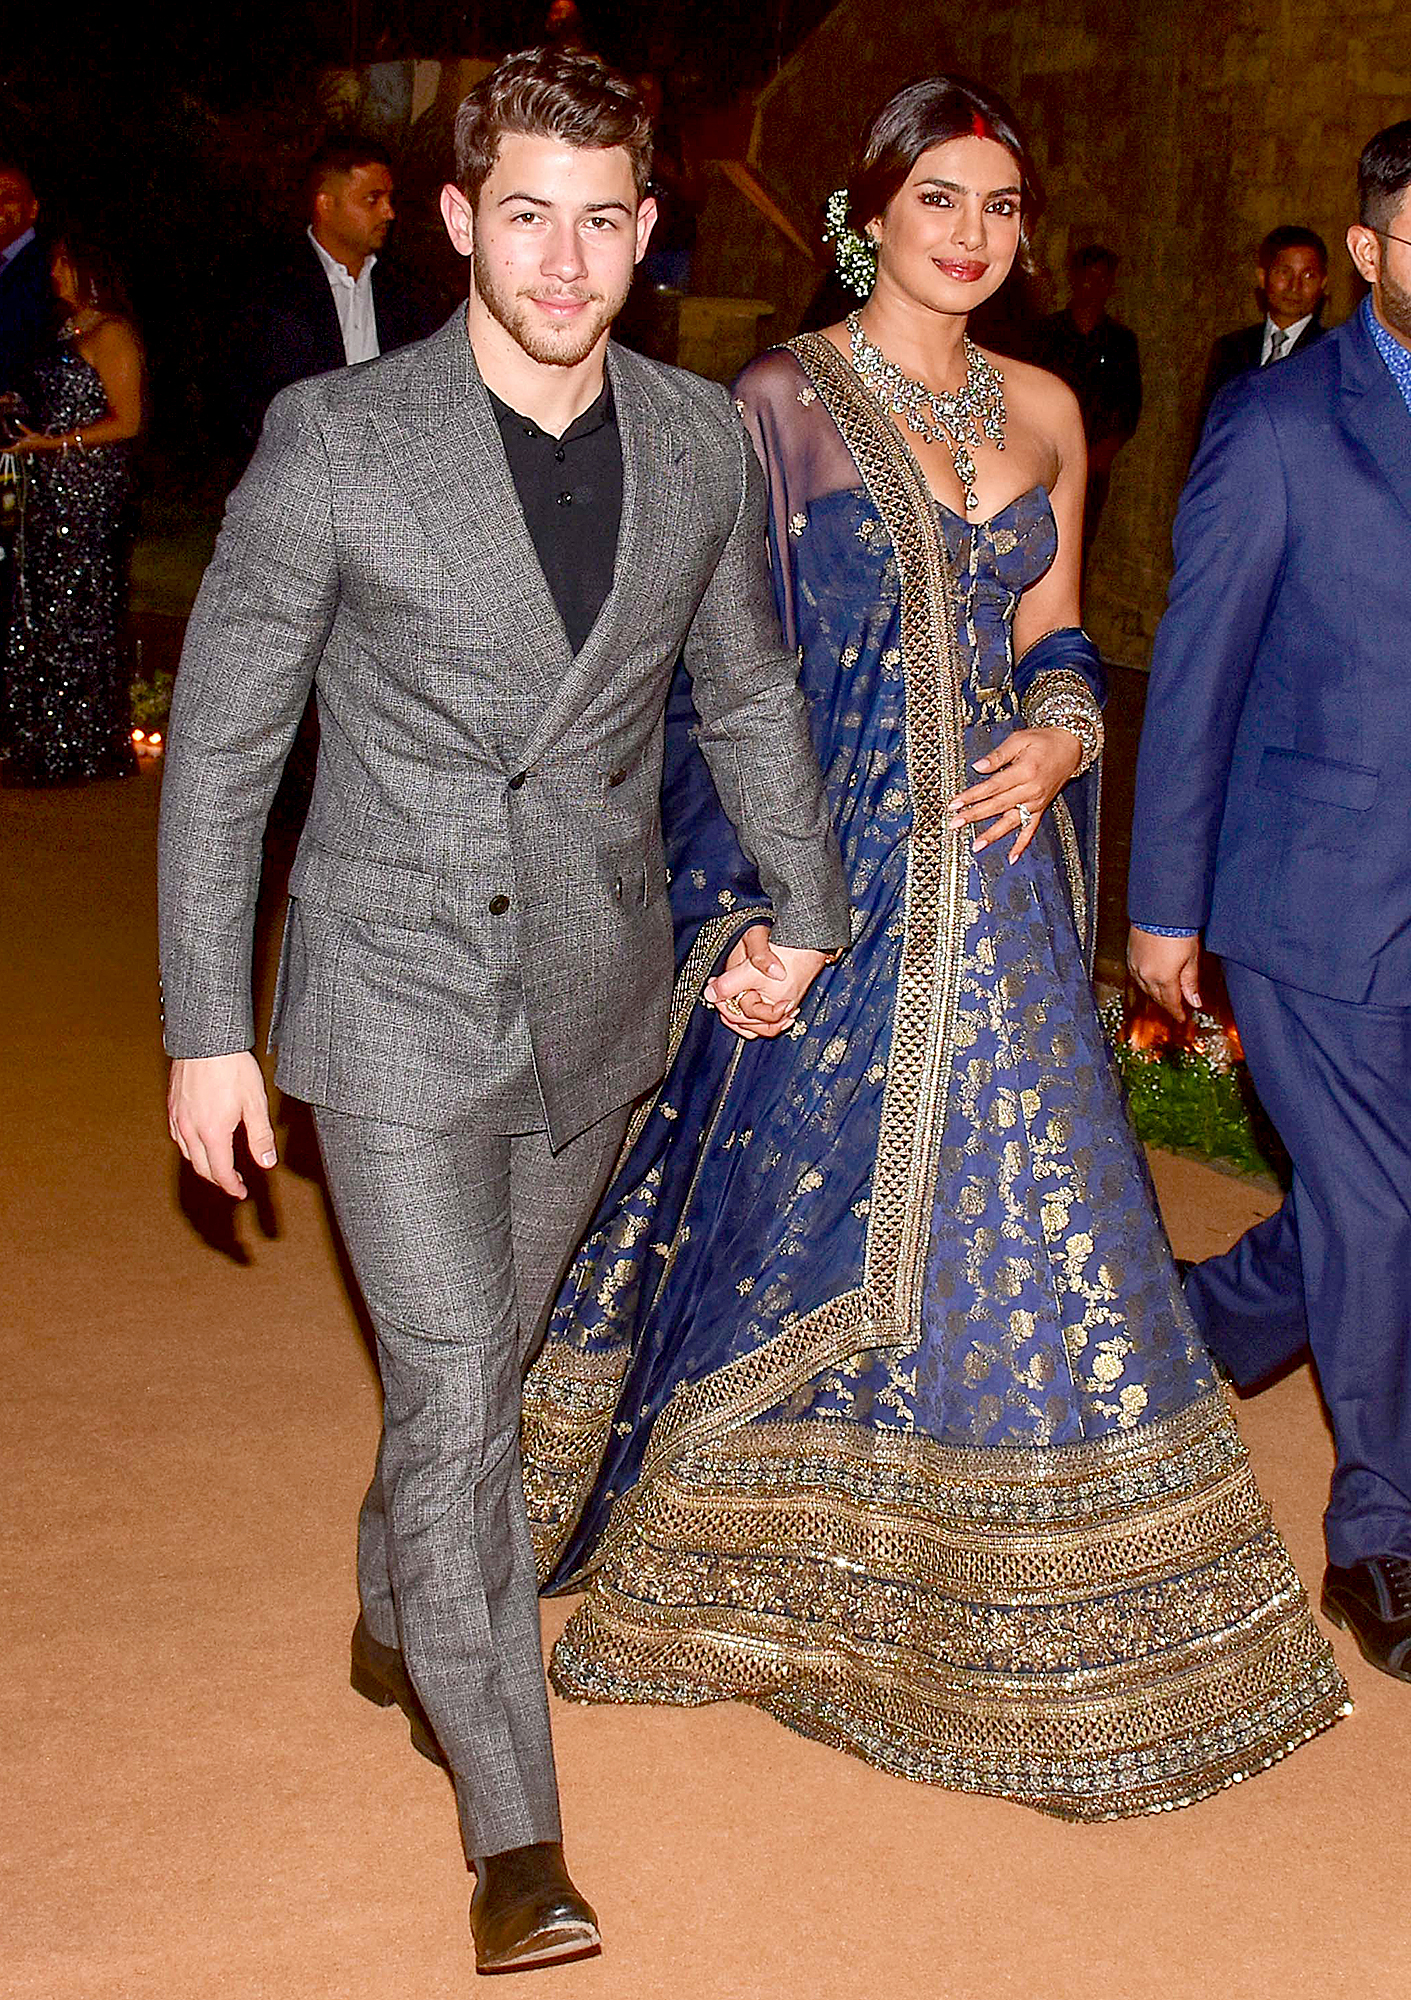 Nick-Jonas-and-Priyanka-Chopra-Mumbai-Wedding-Reception - MUMBAI, INDIA – 2018/12/19: Indian actress Priyanka Chopra with her husband US musician Nick Jonas are seen during their wedding reception at the hotel JW Marriott in Mumbai. (Photo by Azhar Khan/SOPA Images/LightRocket via Getty Images)